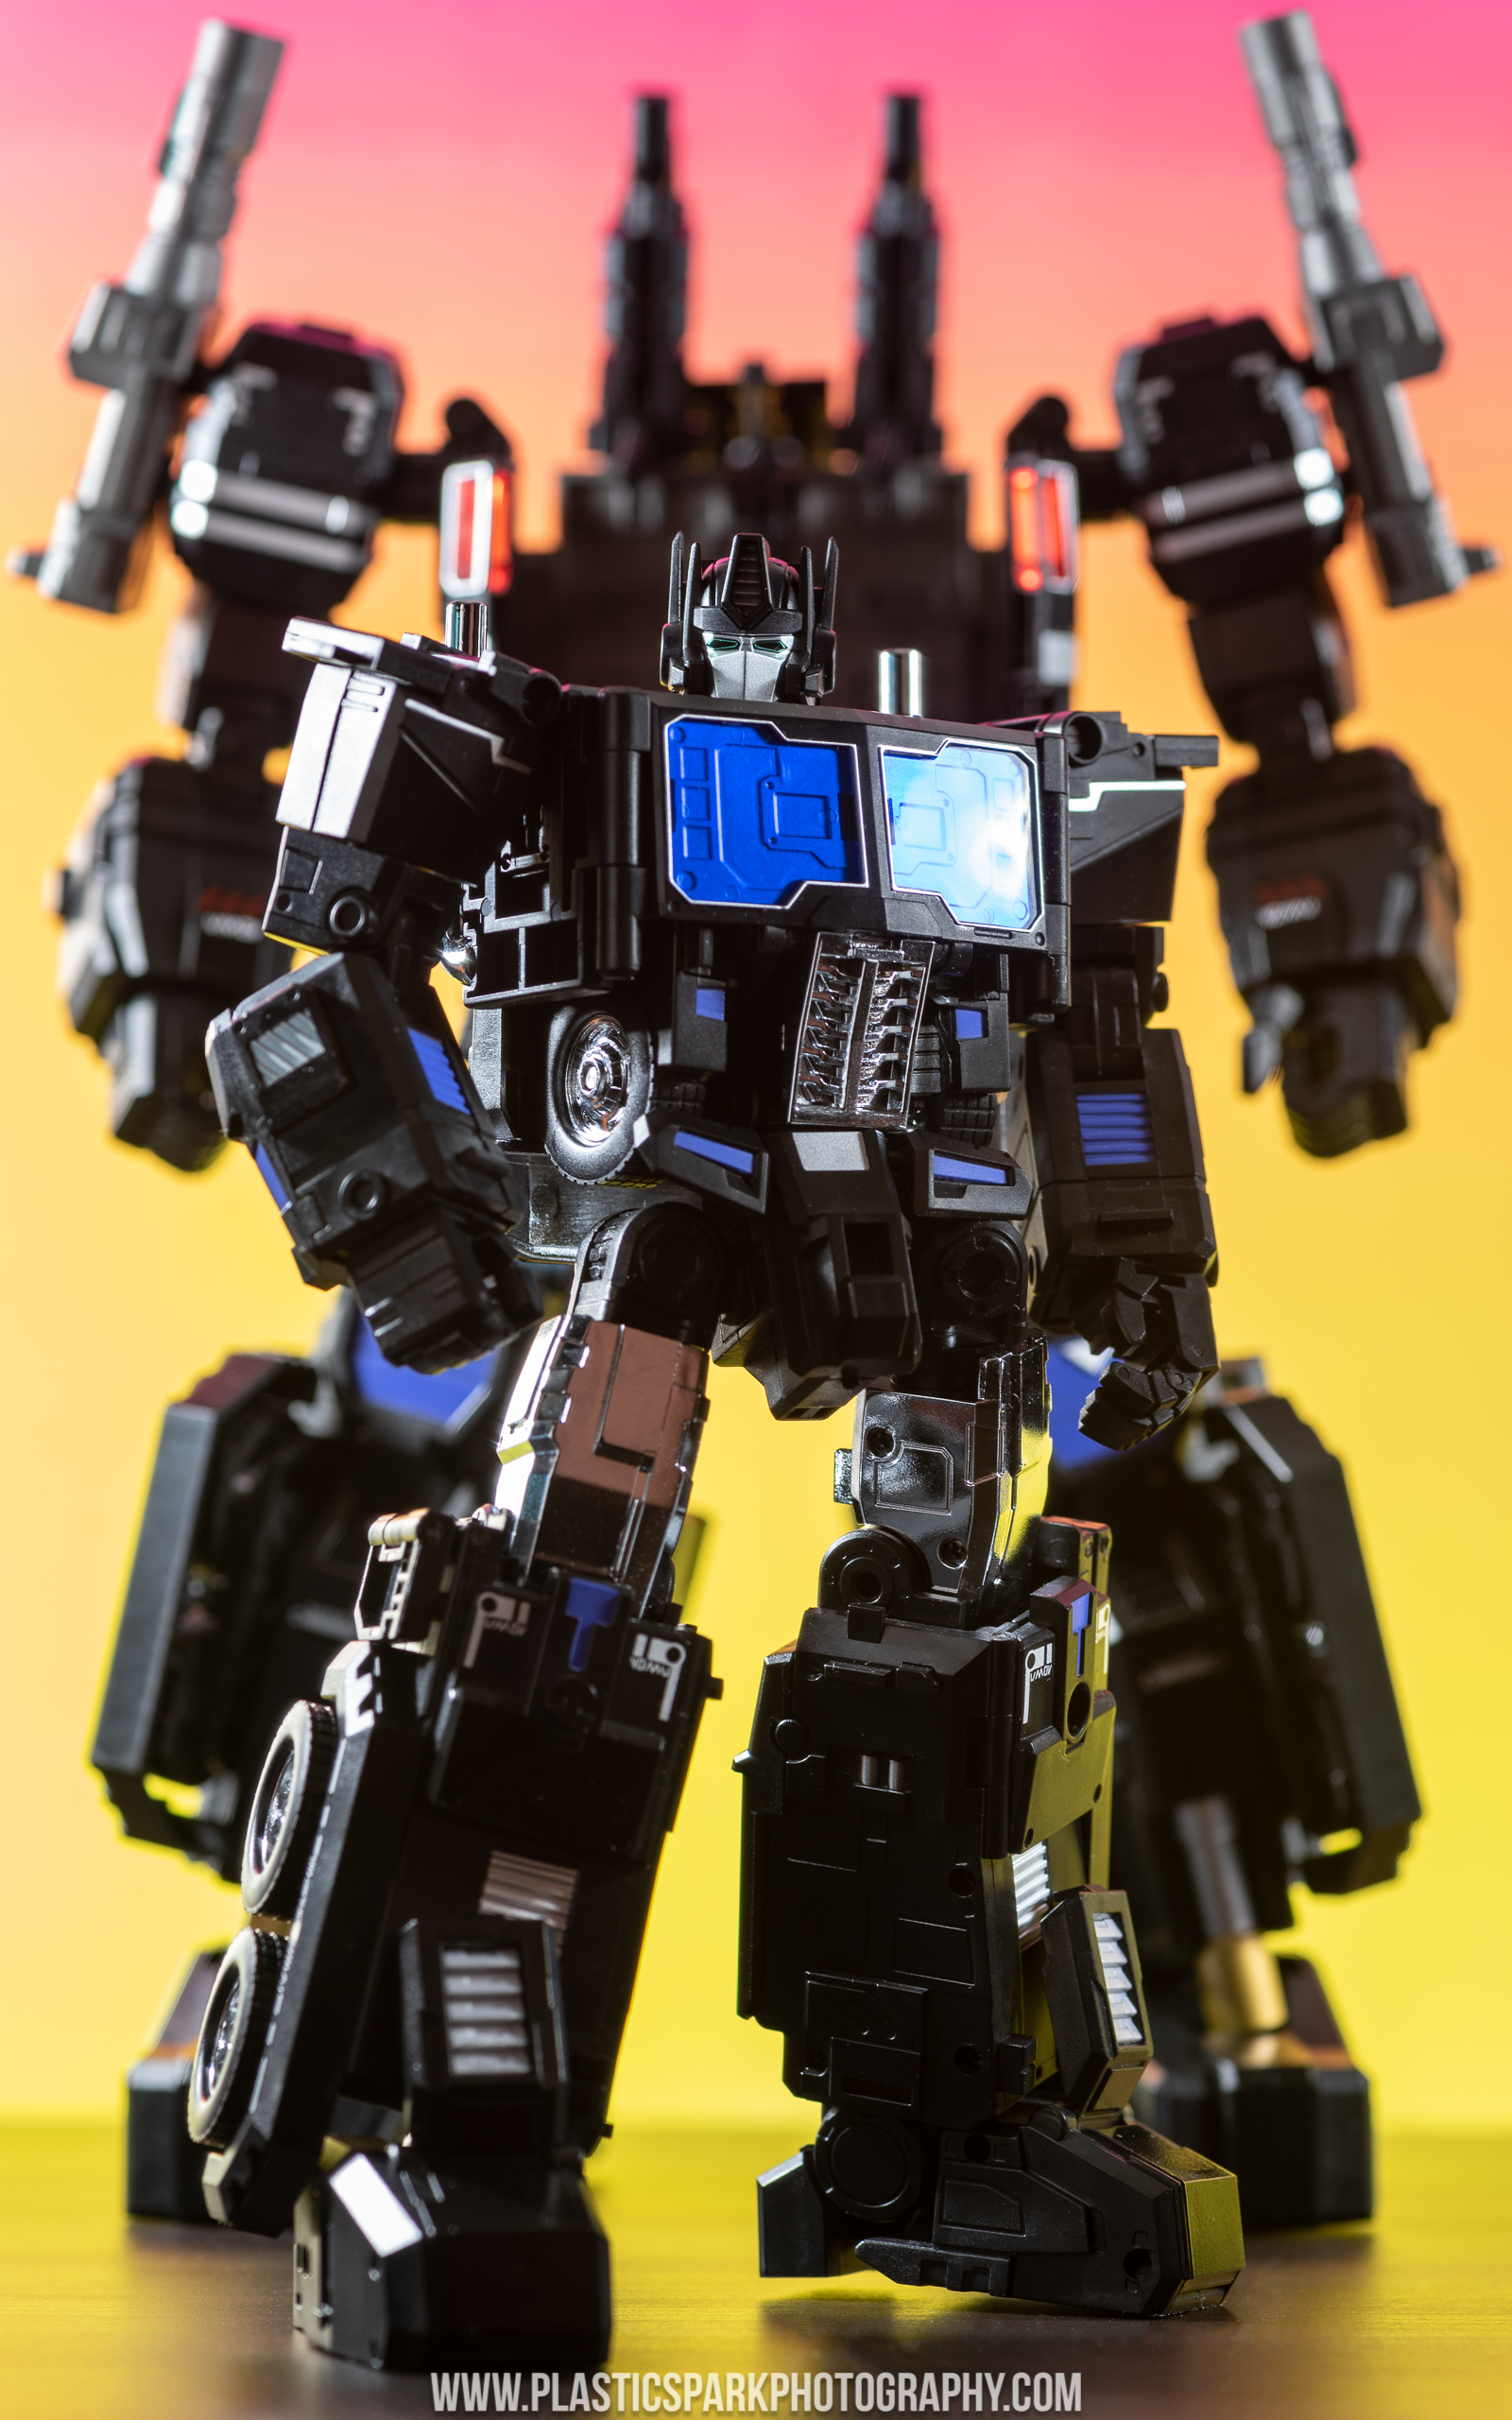 Fans Hobby MB-06A Black Power Baser Preview (7 of 10).jpg